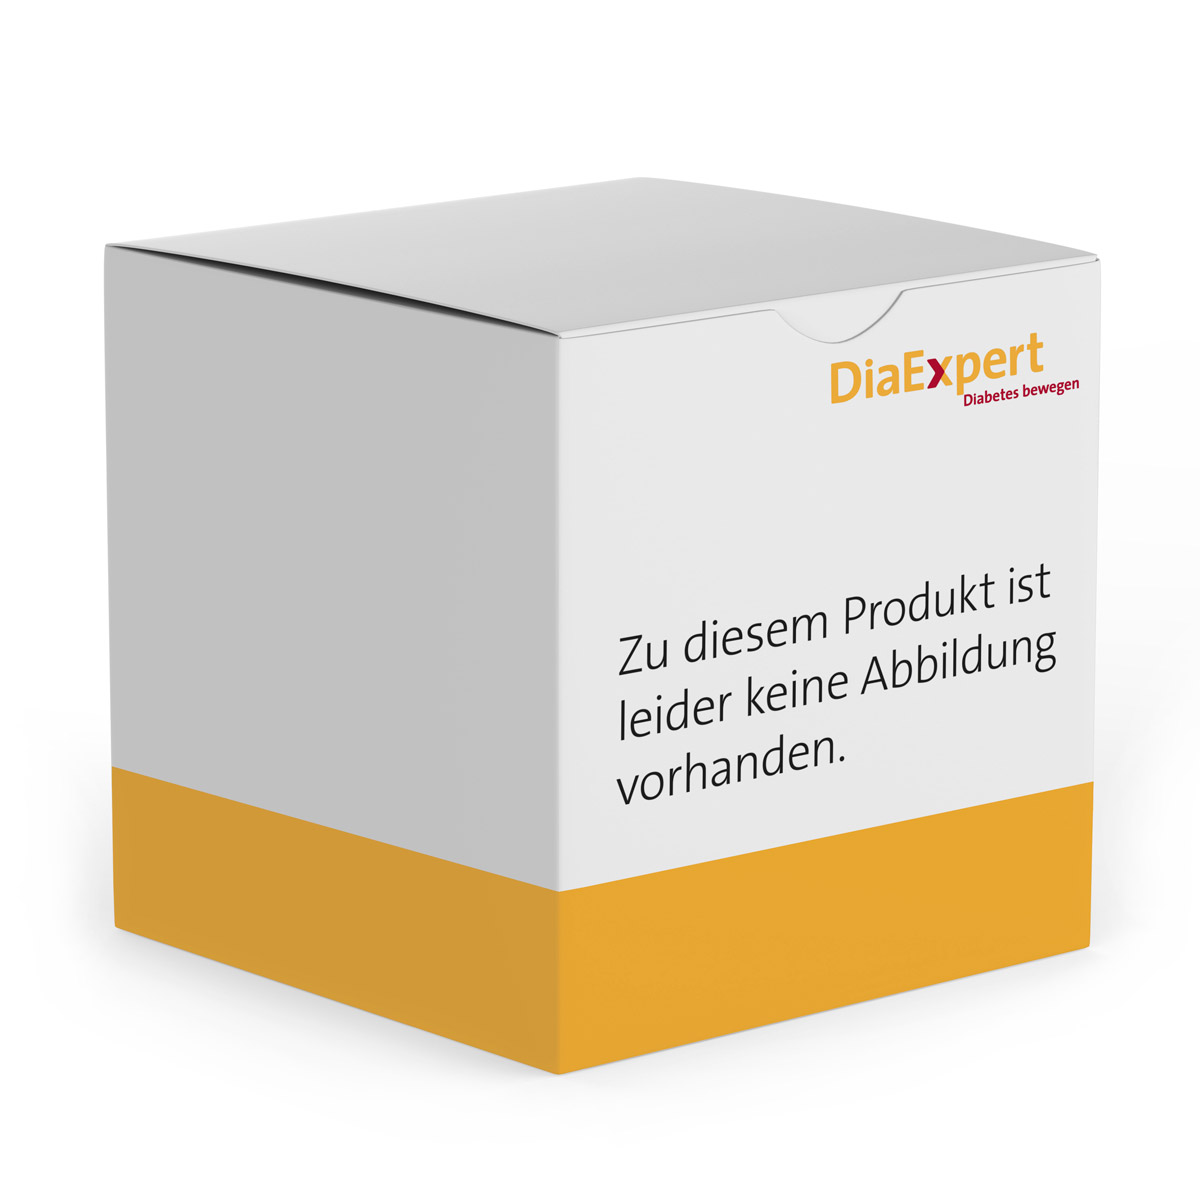 Omnipod StarterKit mg/dL von Insulet Corporation